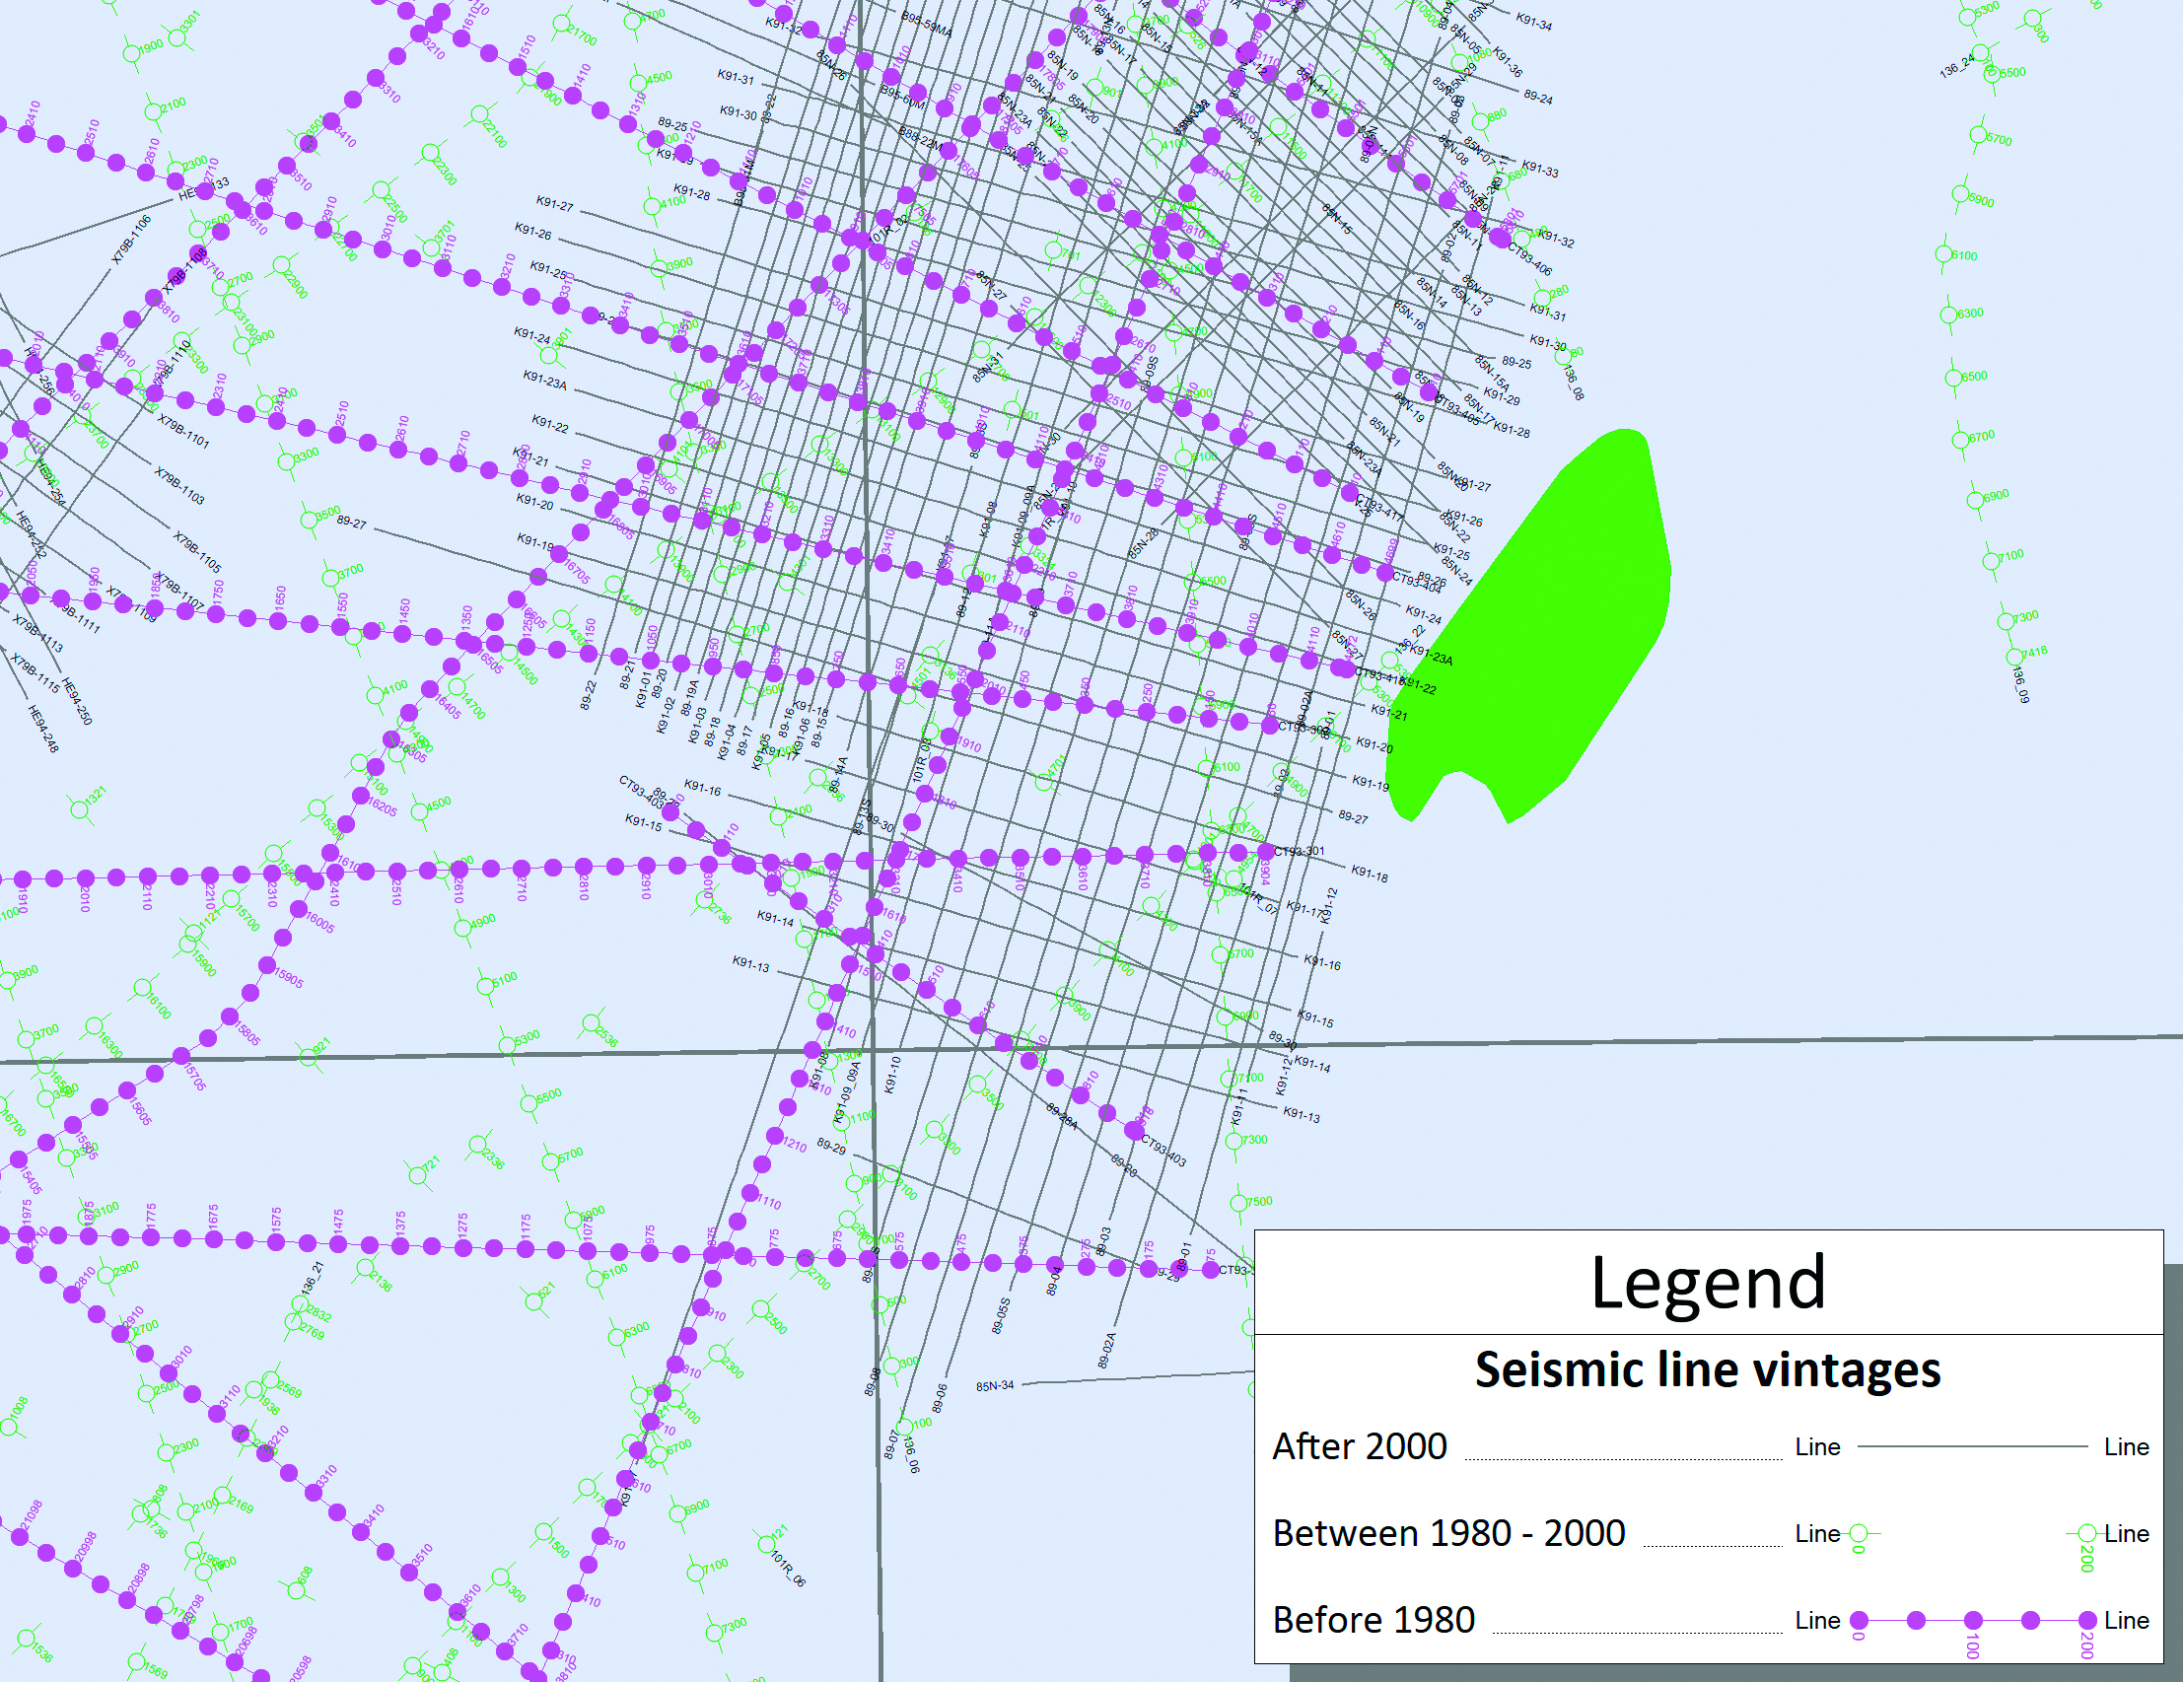 In conjunction with direct connections to popular seismic applications and Petrosys' established master storage of seismic navigation, Petrosys sets an industry standard for mapping of historical seismic data.